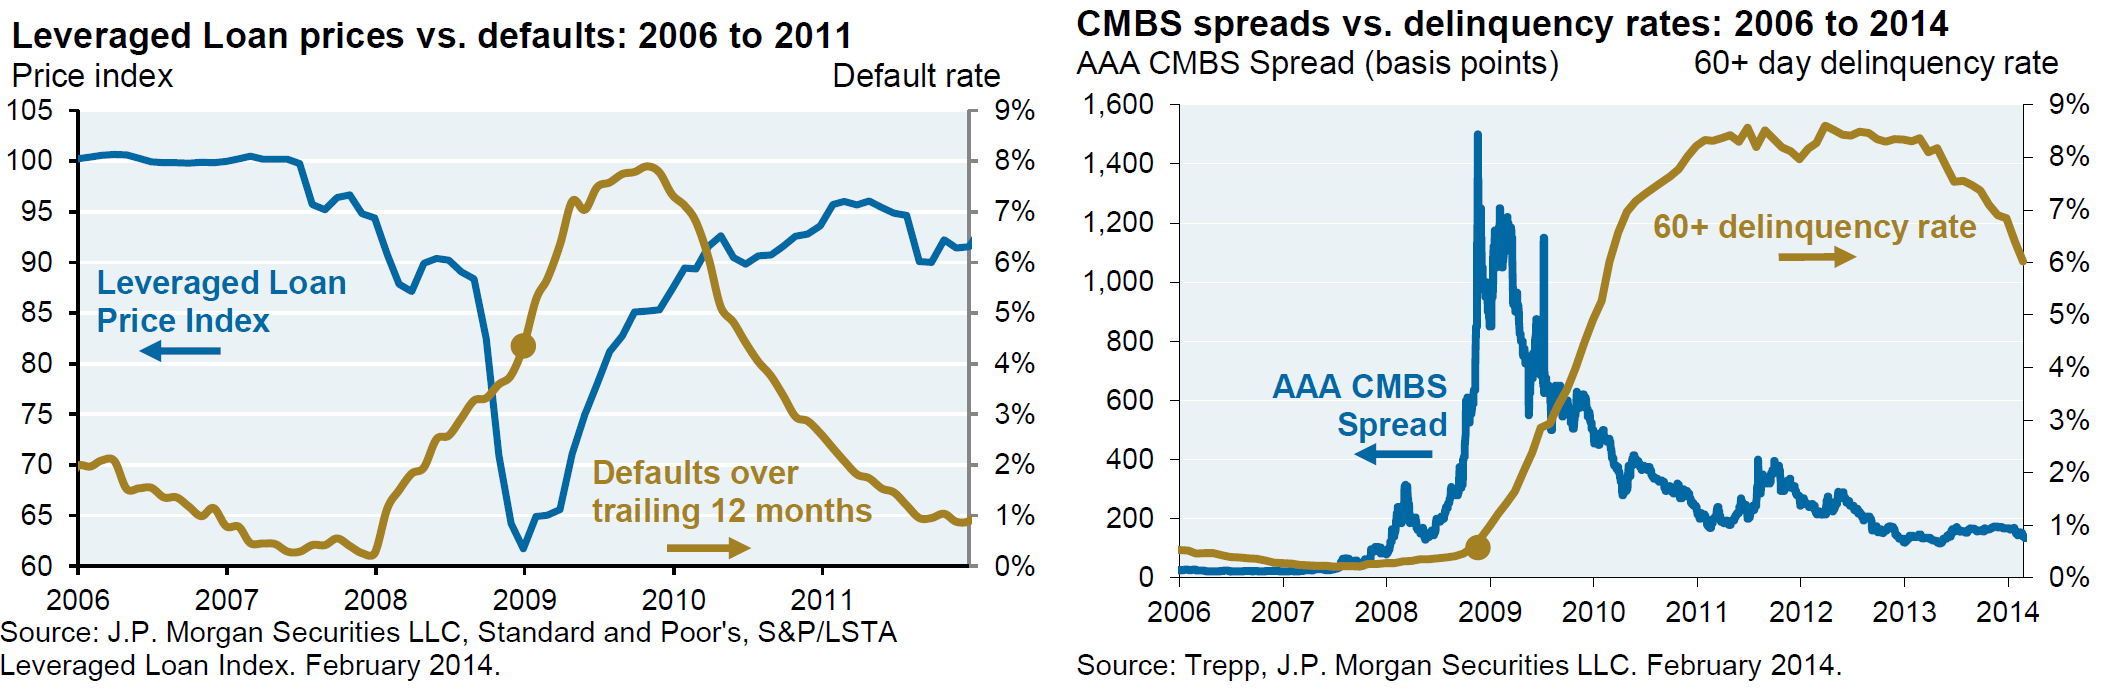 leveraged loan prices vs defaults 2006 to 2011 | CMBS spreads vs delinquency rates 2006 to 2014